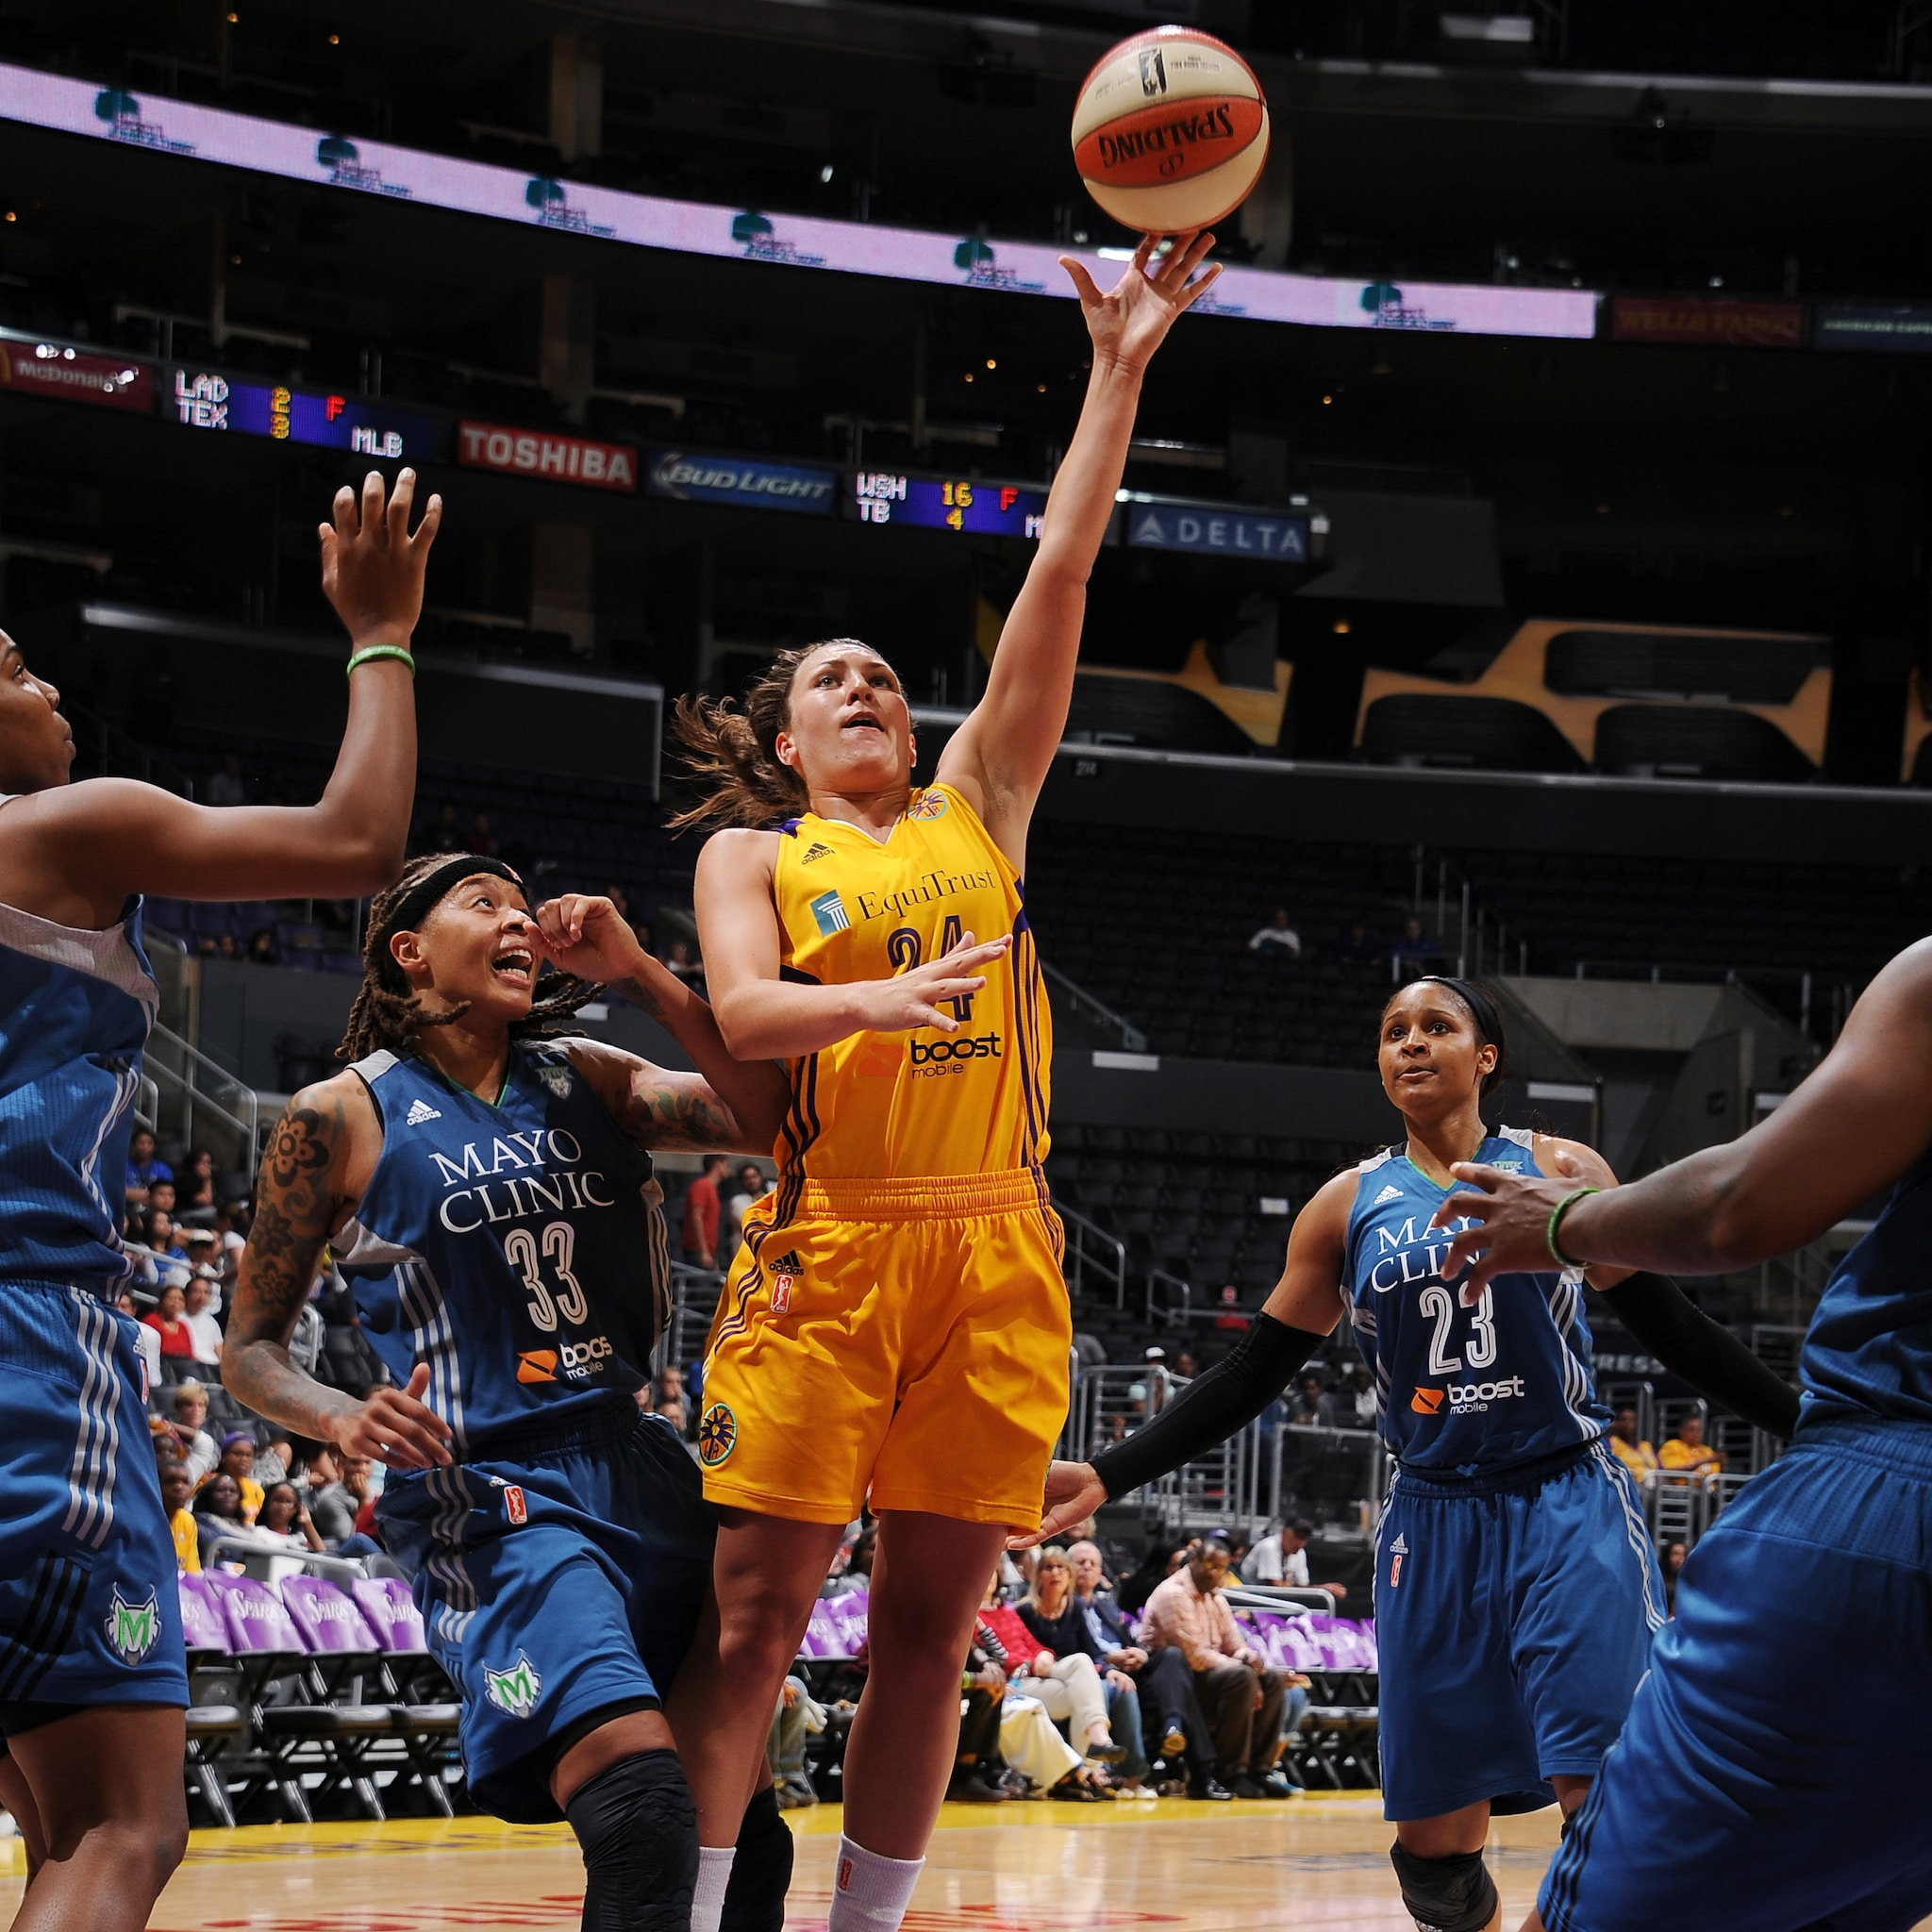 Sparks center Andrea Hoover came off the bench to score six points in 21 minutes.